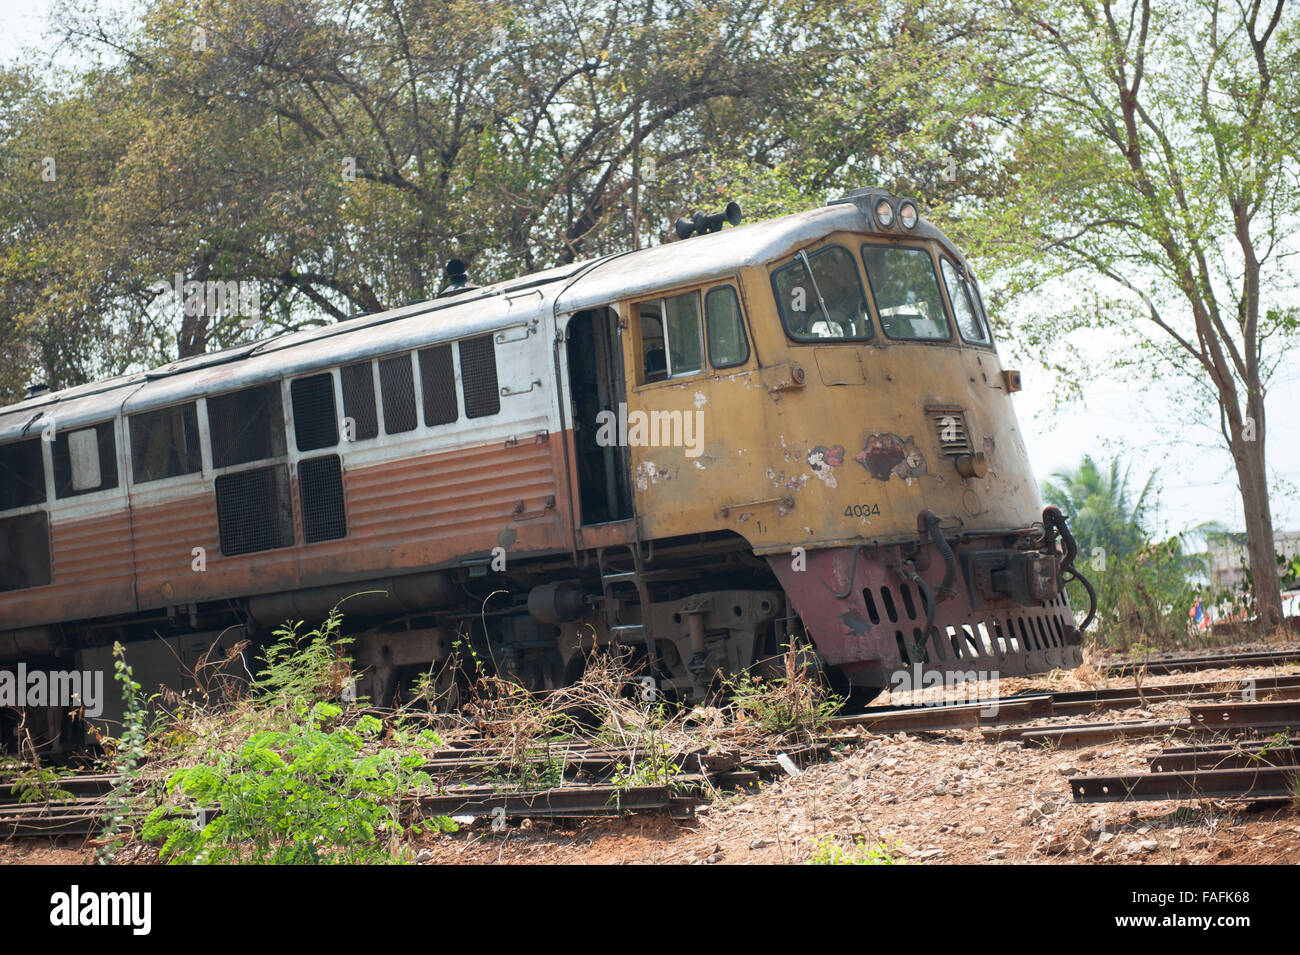 Old train in Thailand, Kanchanaburi scrapped - Stock Image